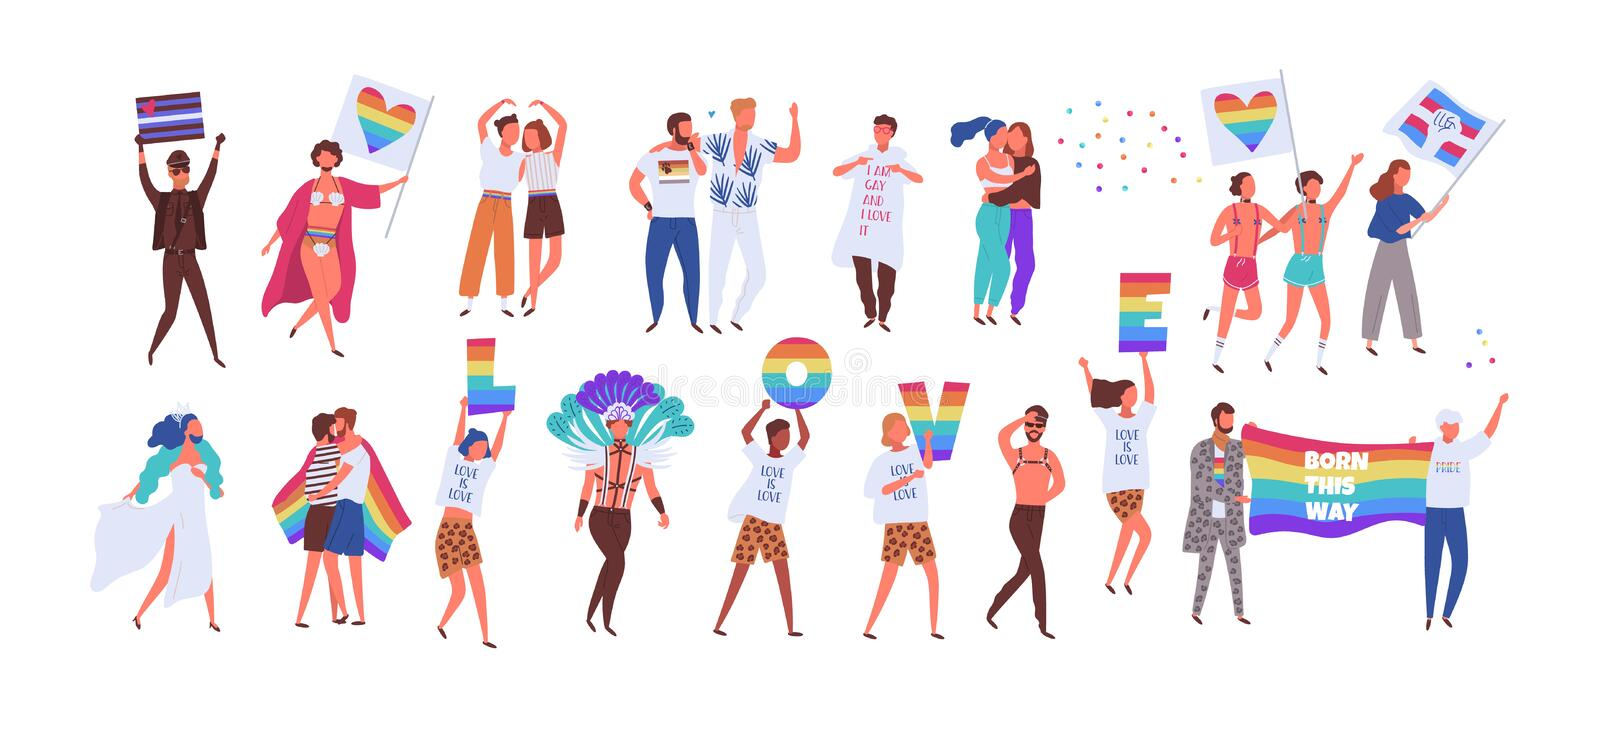 Crowd of people taking part in pride parade. Men and women at street demonstration for LGBT rights. Group of gay stock illustration